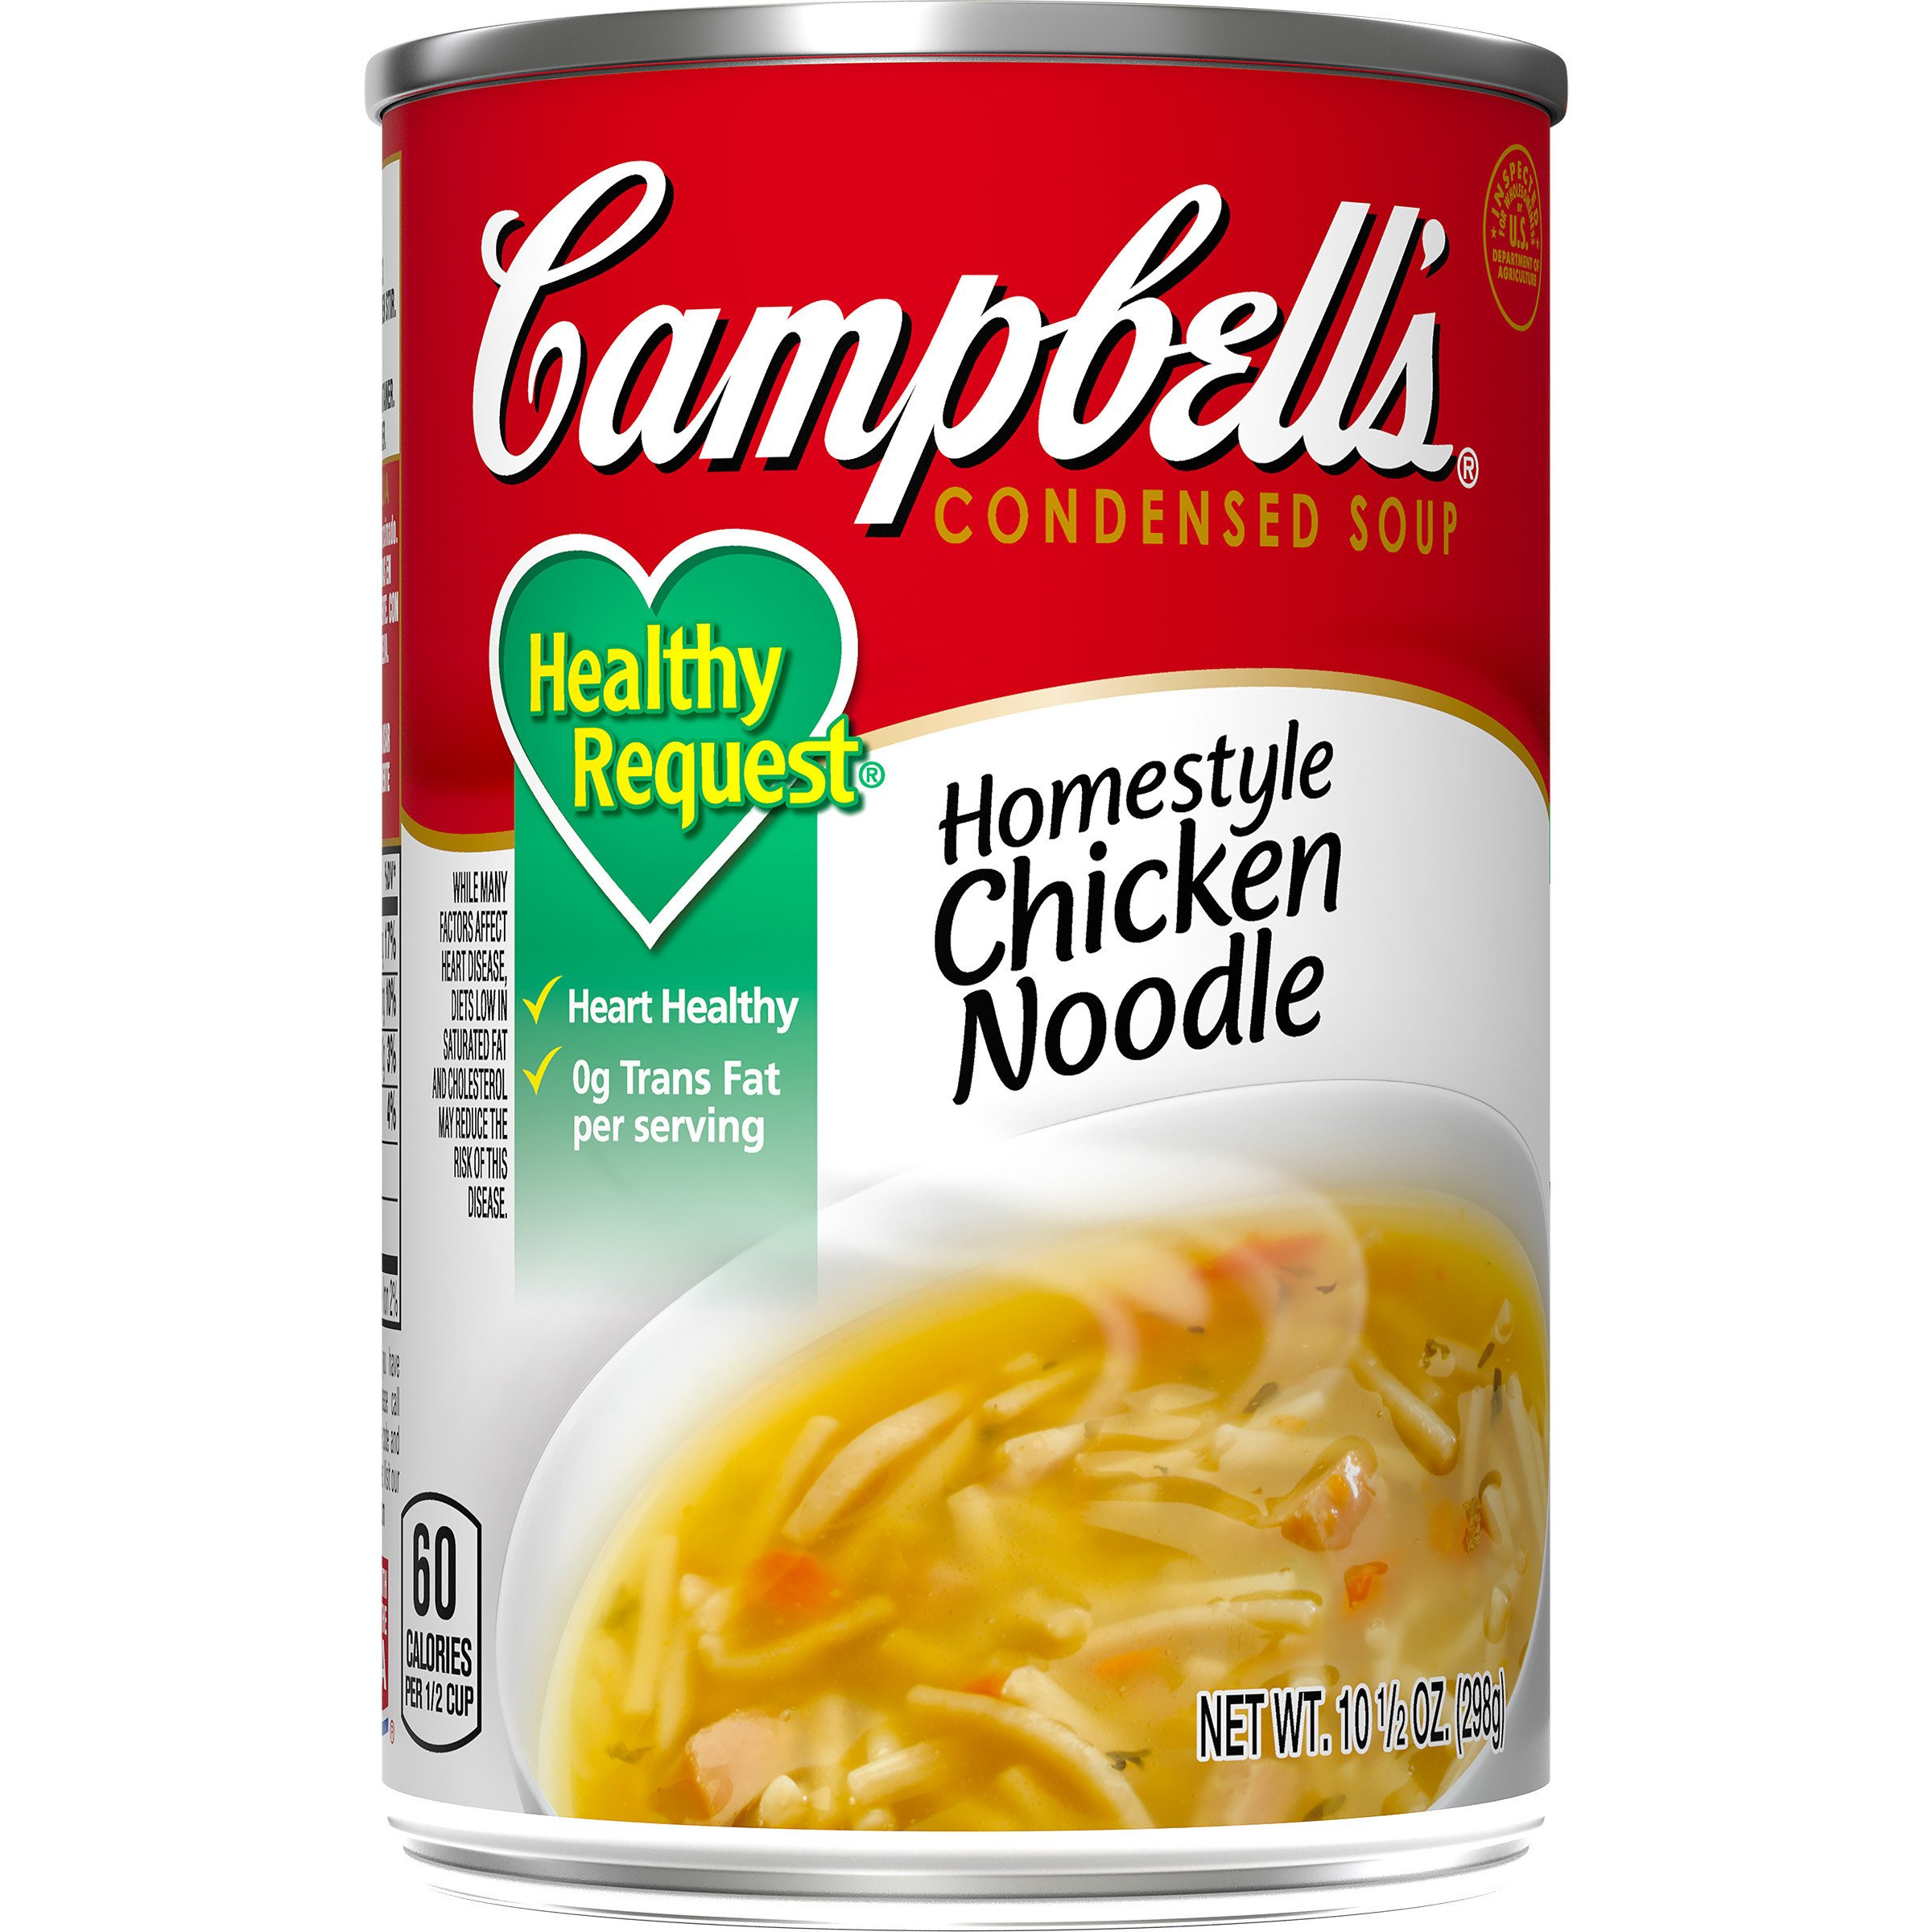 Campbell's Healthy Request Condensed Soup, Homestyle Chicken Noodle, 10.5 Ounce (Pack of 12)